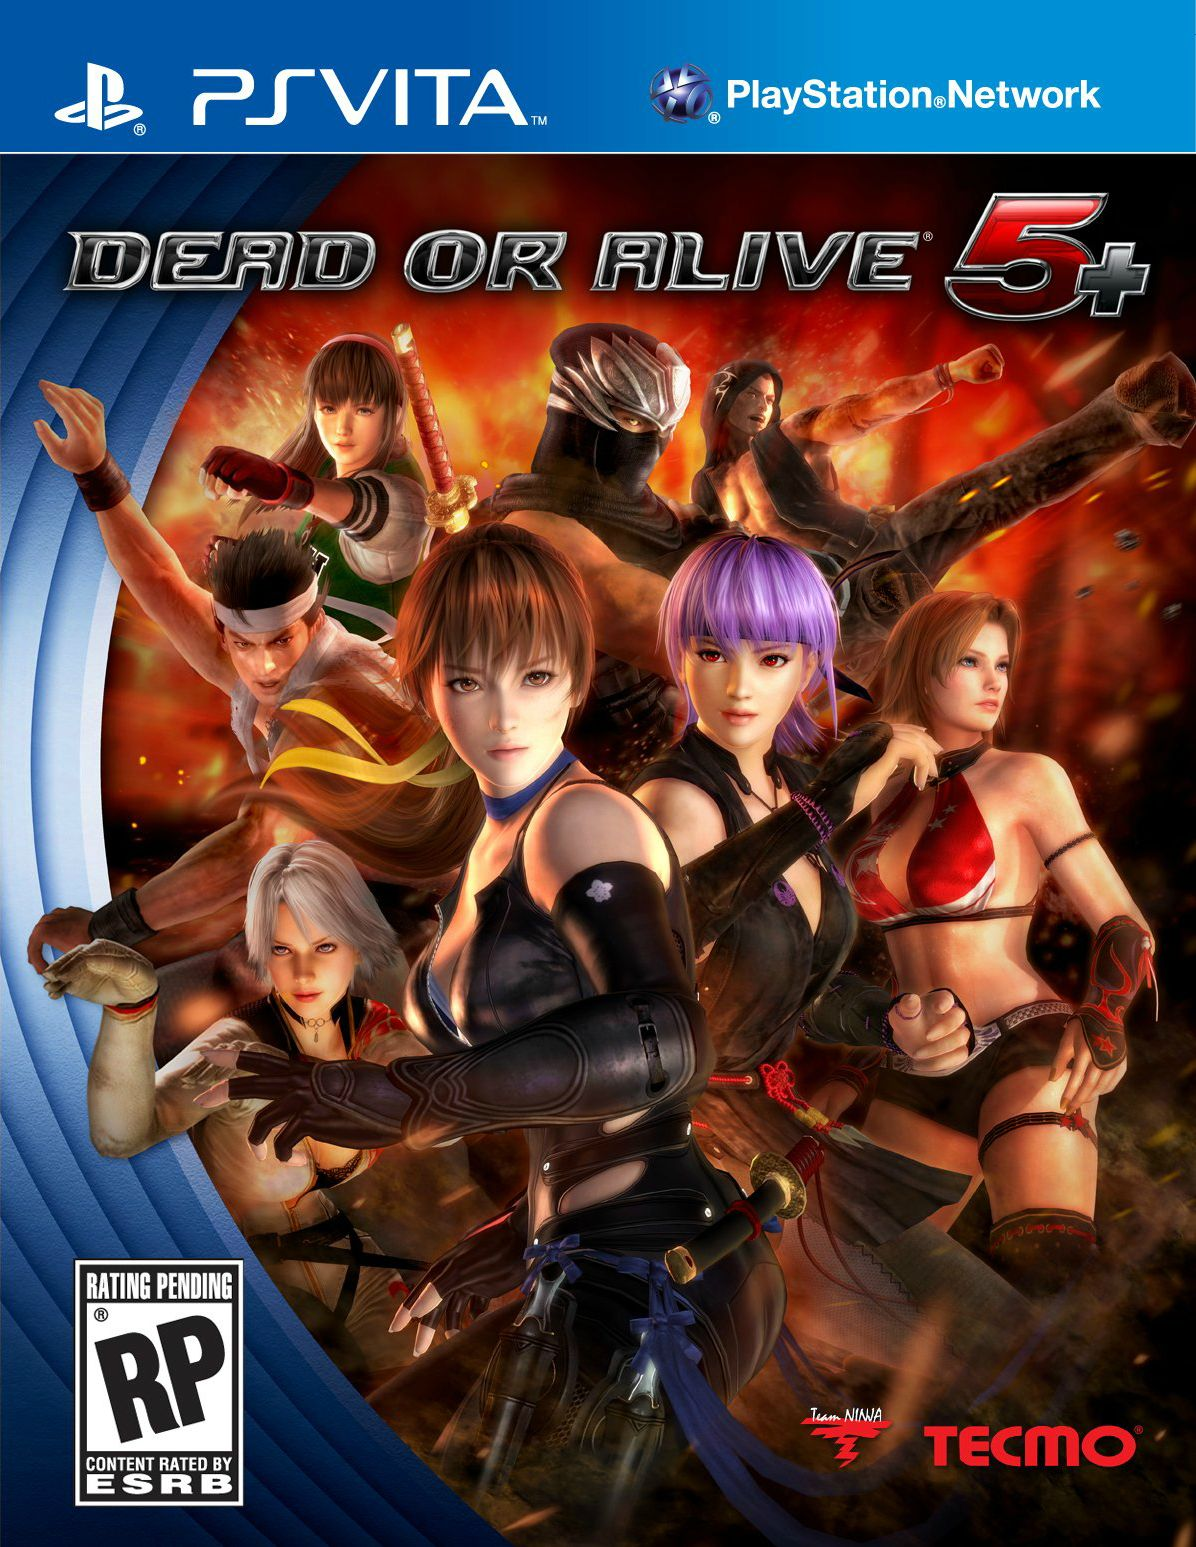 dead or alive 5 plus cover ps vita